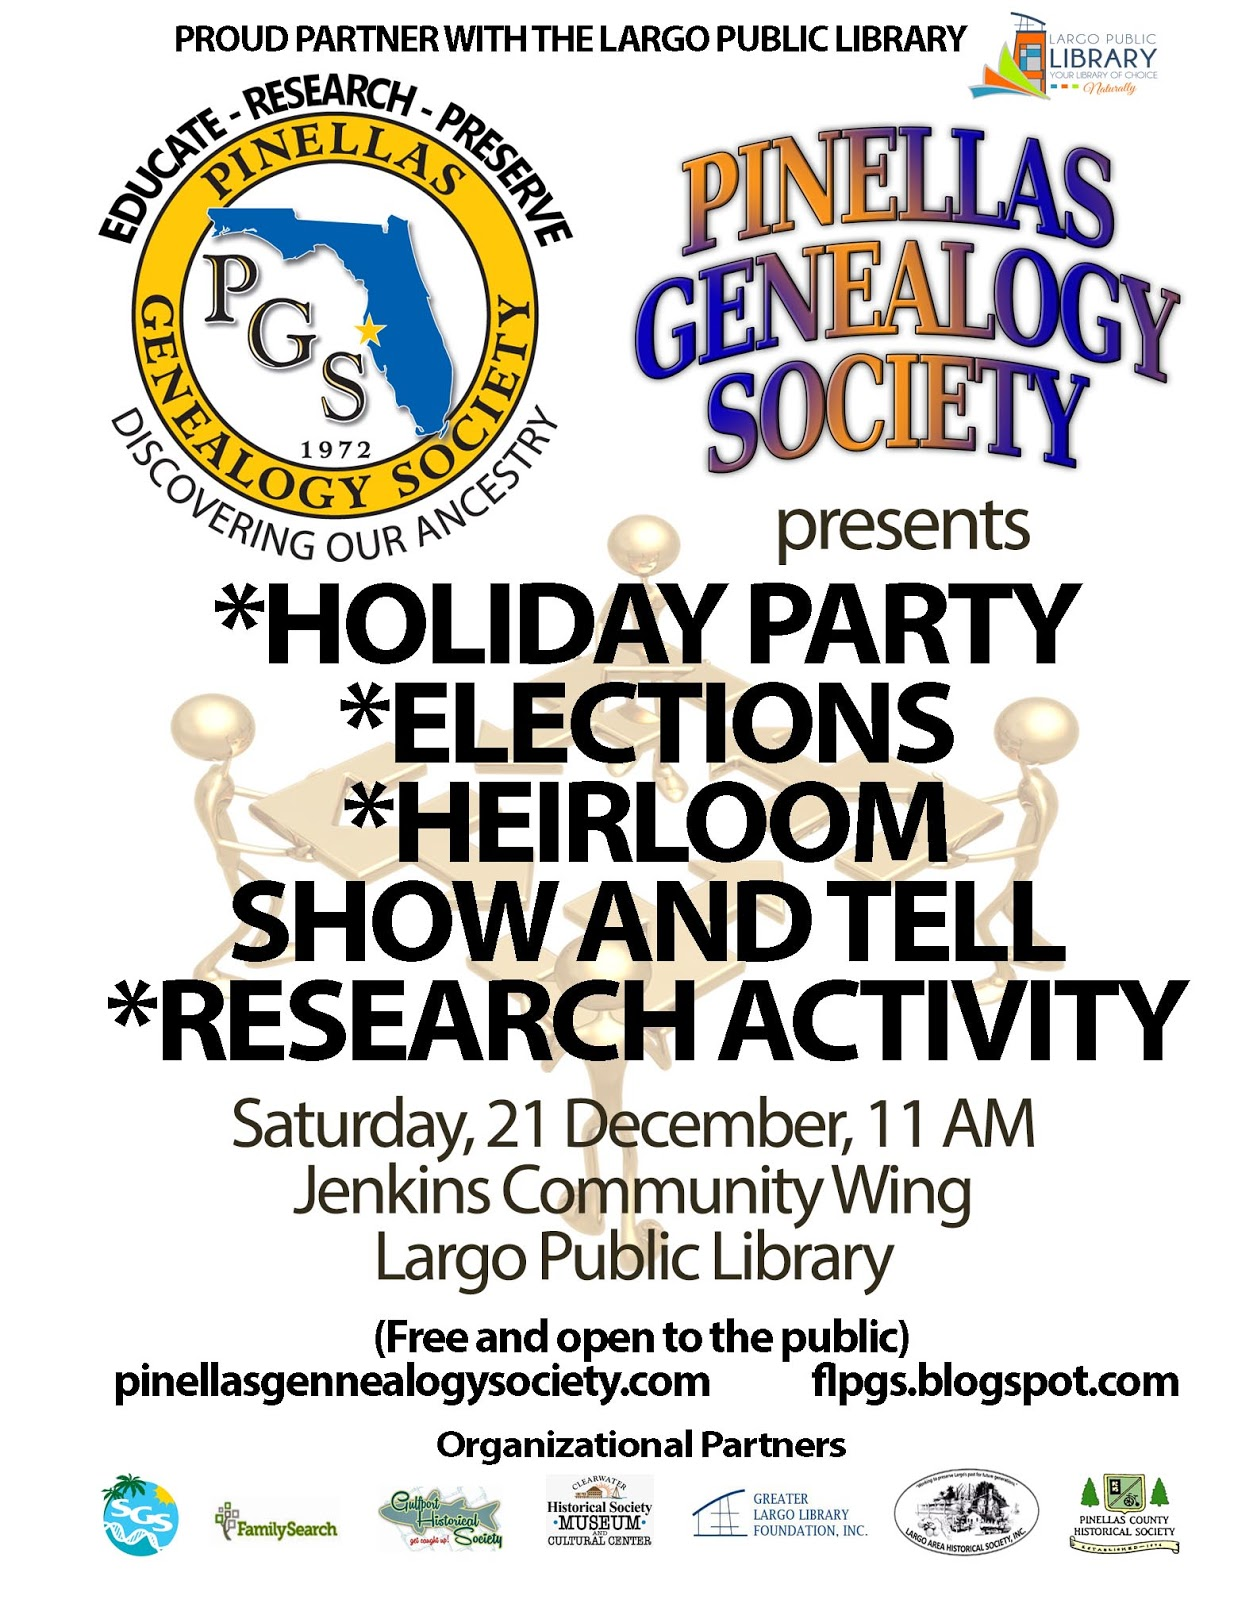 Pinellas Genealogy Society: Upcoming Events